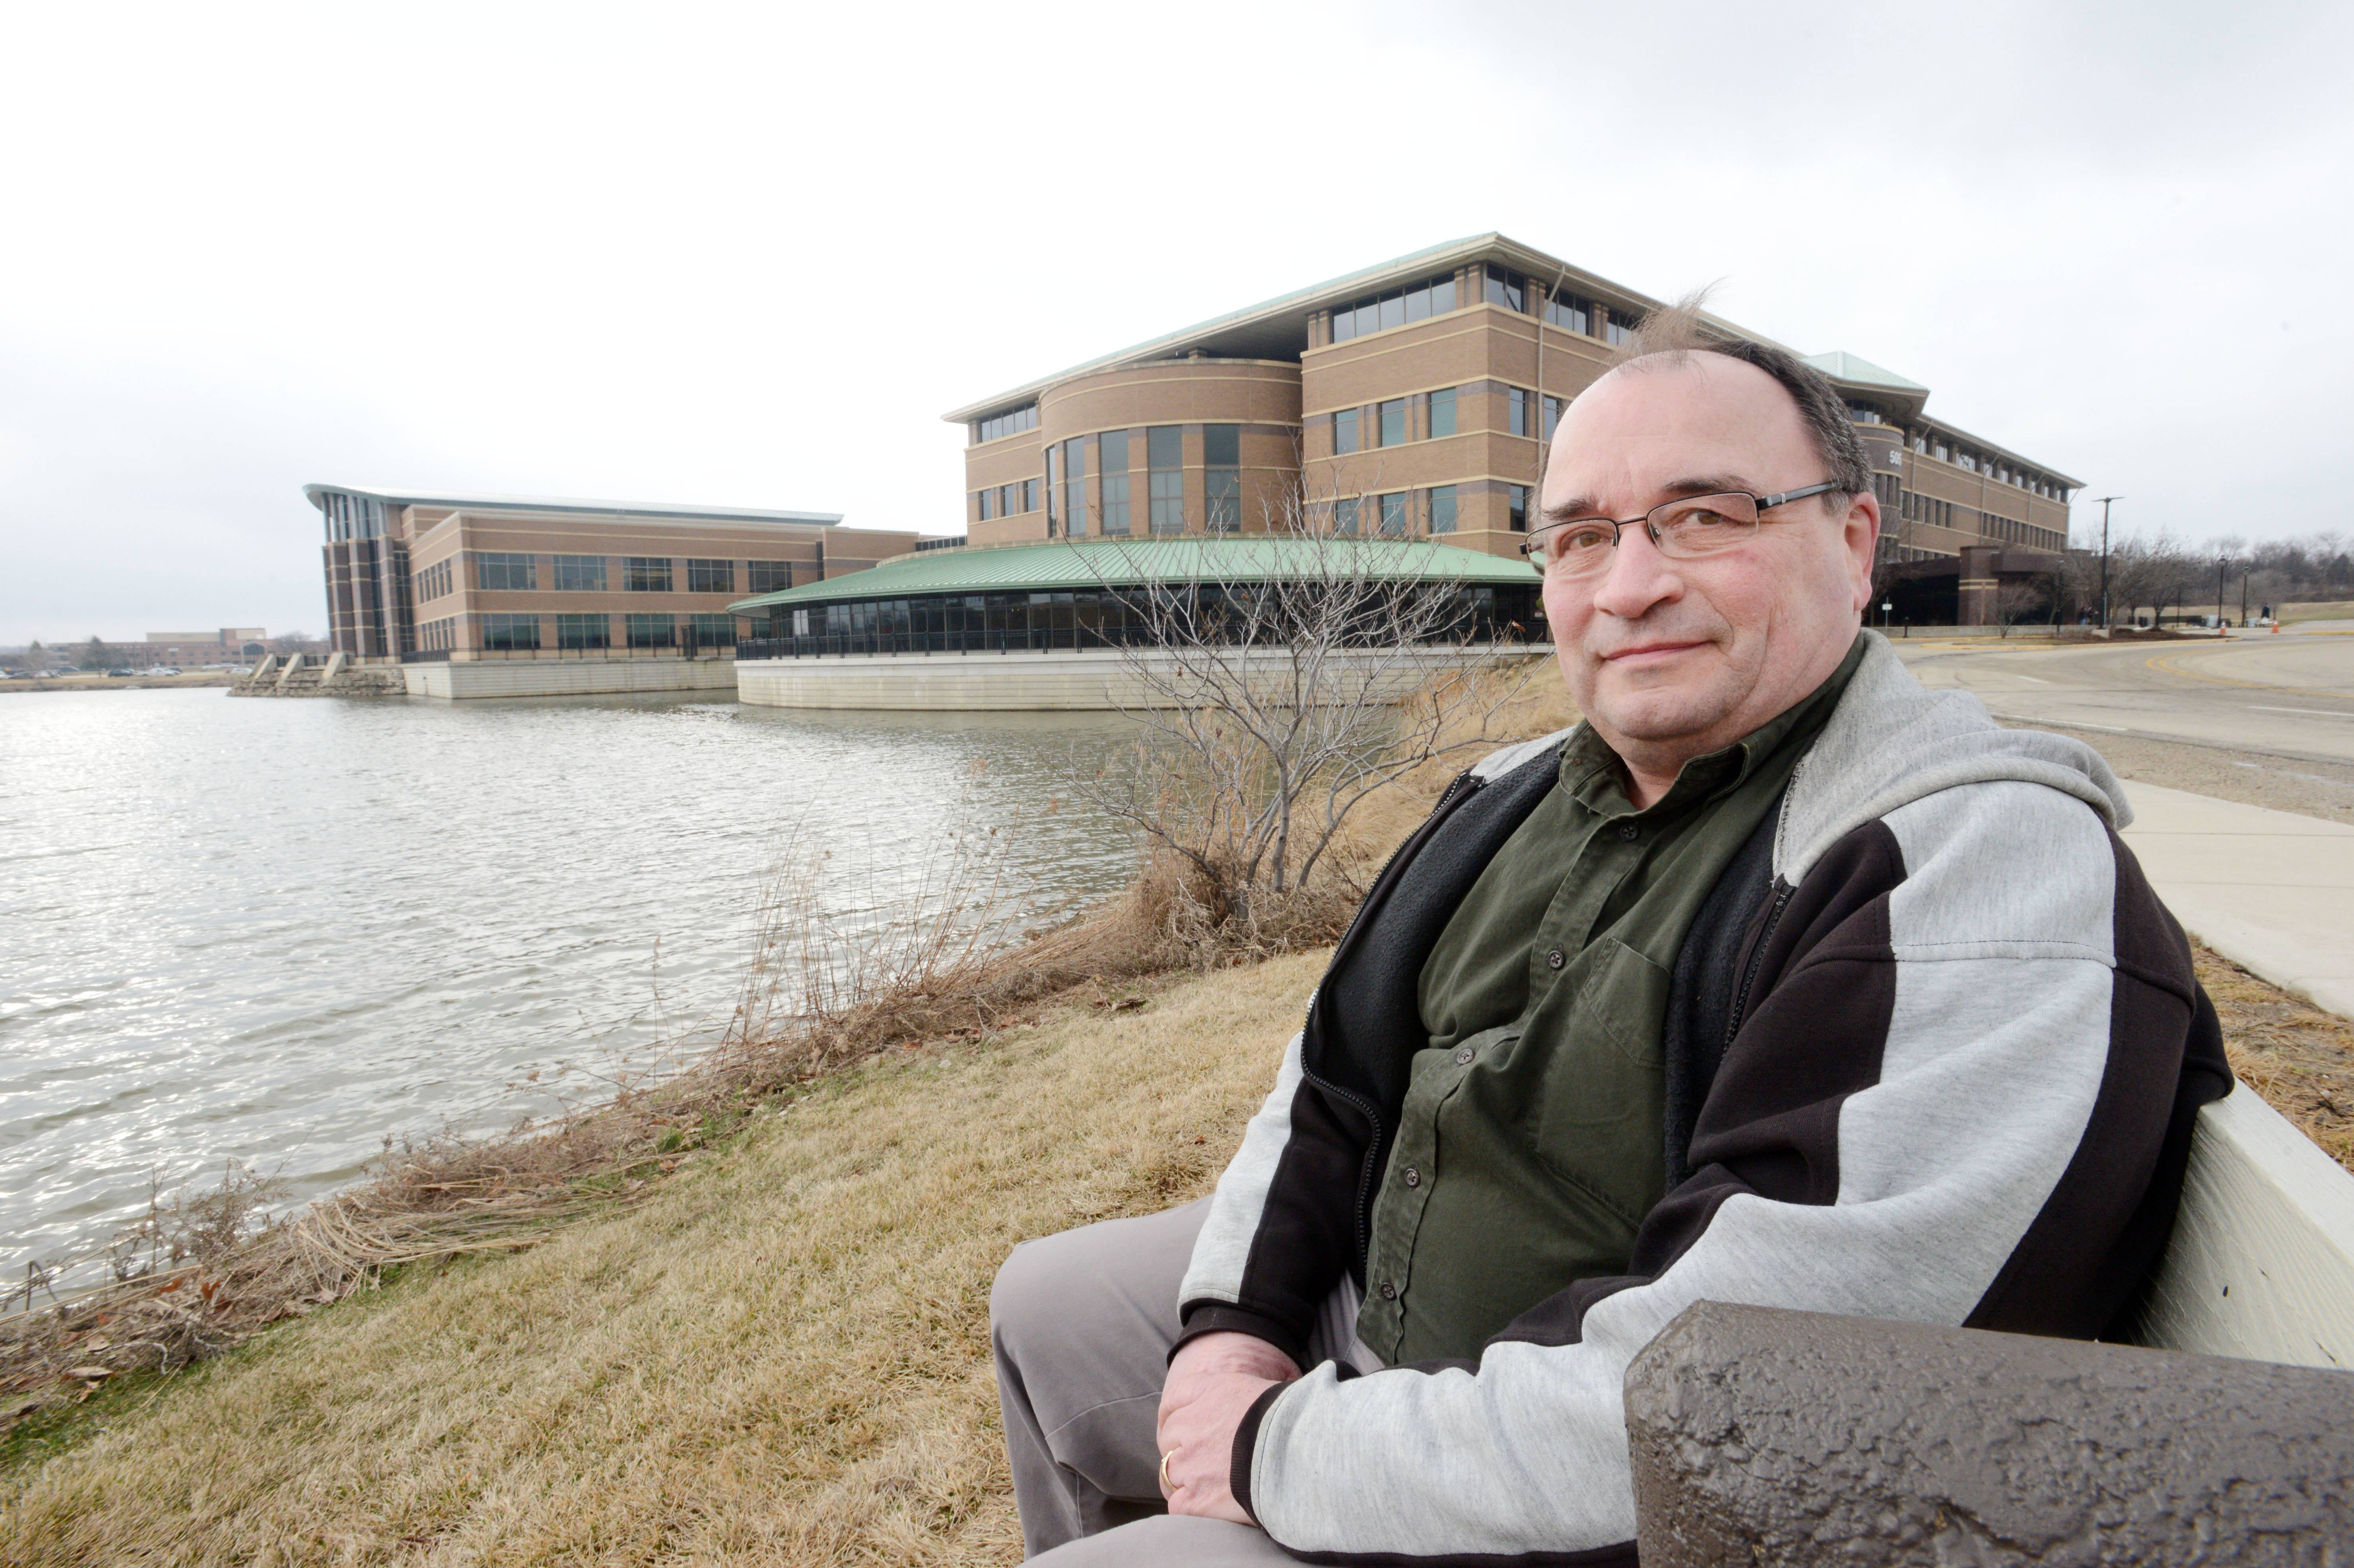 Dan Laird of North Aurora got a speeding ticket in 2004, paid $75 by mail and went on with his life. Then, two weeks ago, he discovered the incident really wasn't behind him after all.